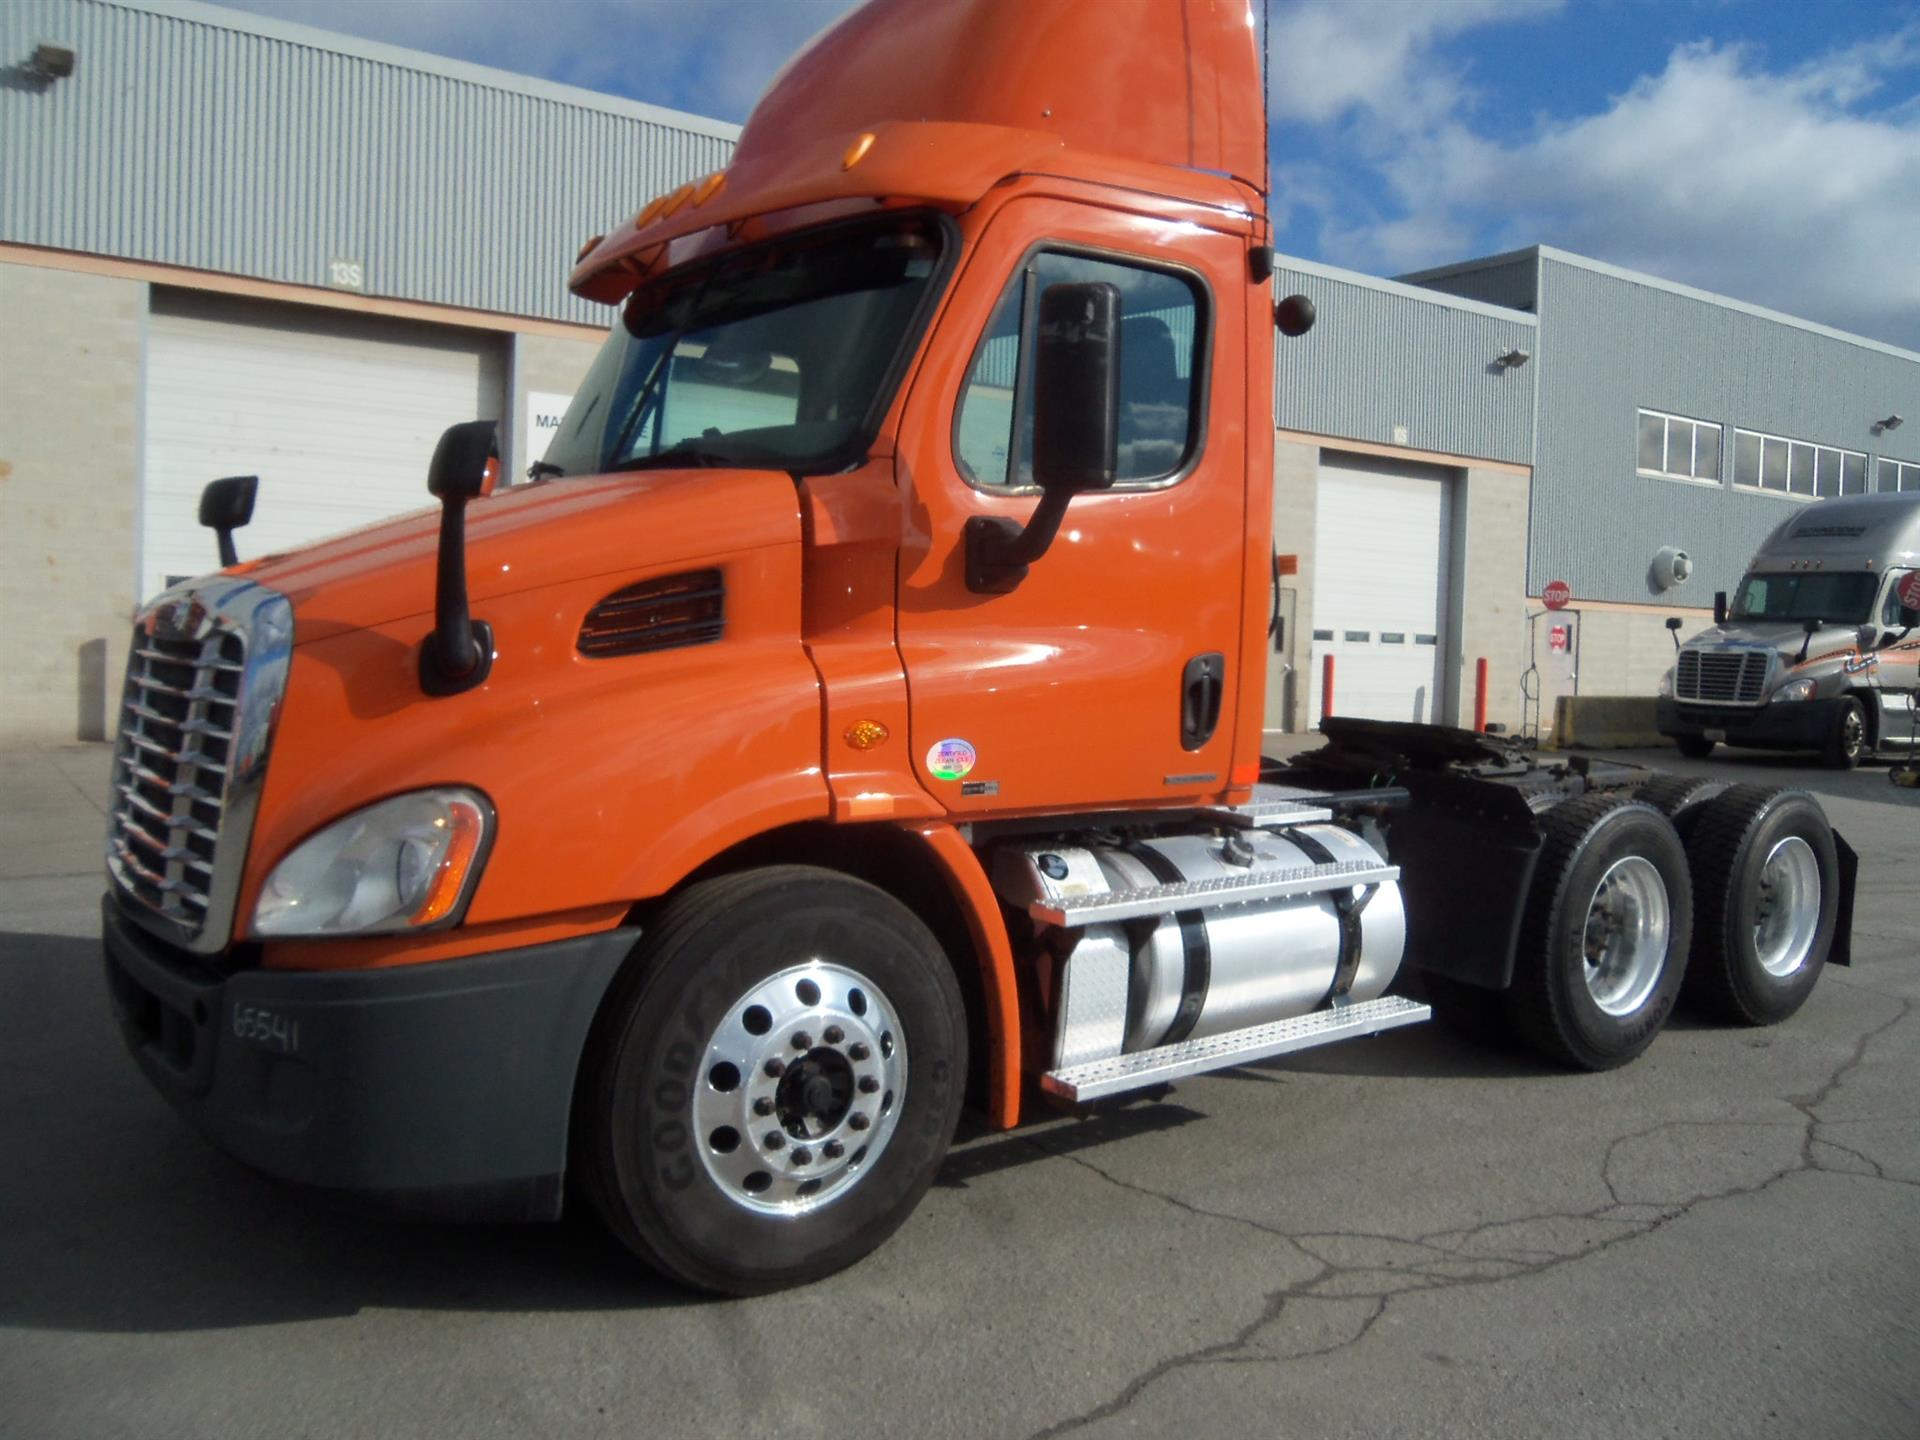 USED 2012 FREIGHTLINER CASCADIA DAYCAB TRUCK #83384